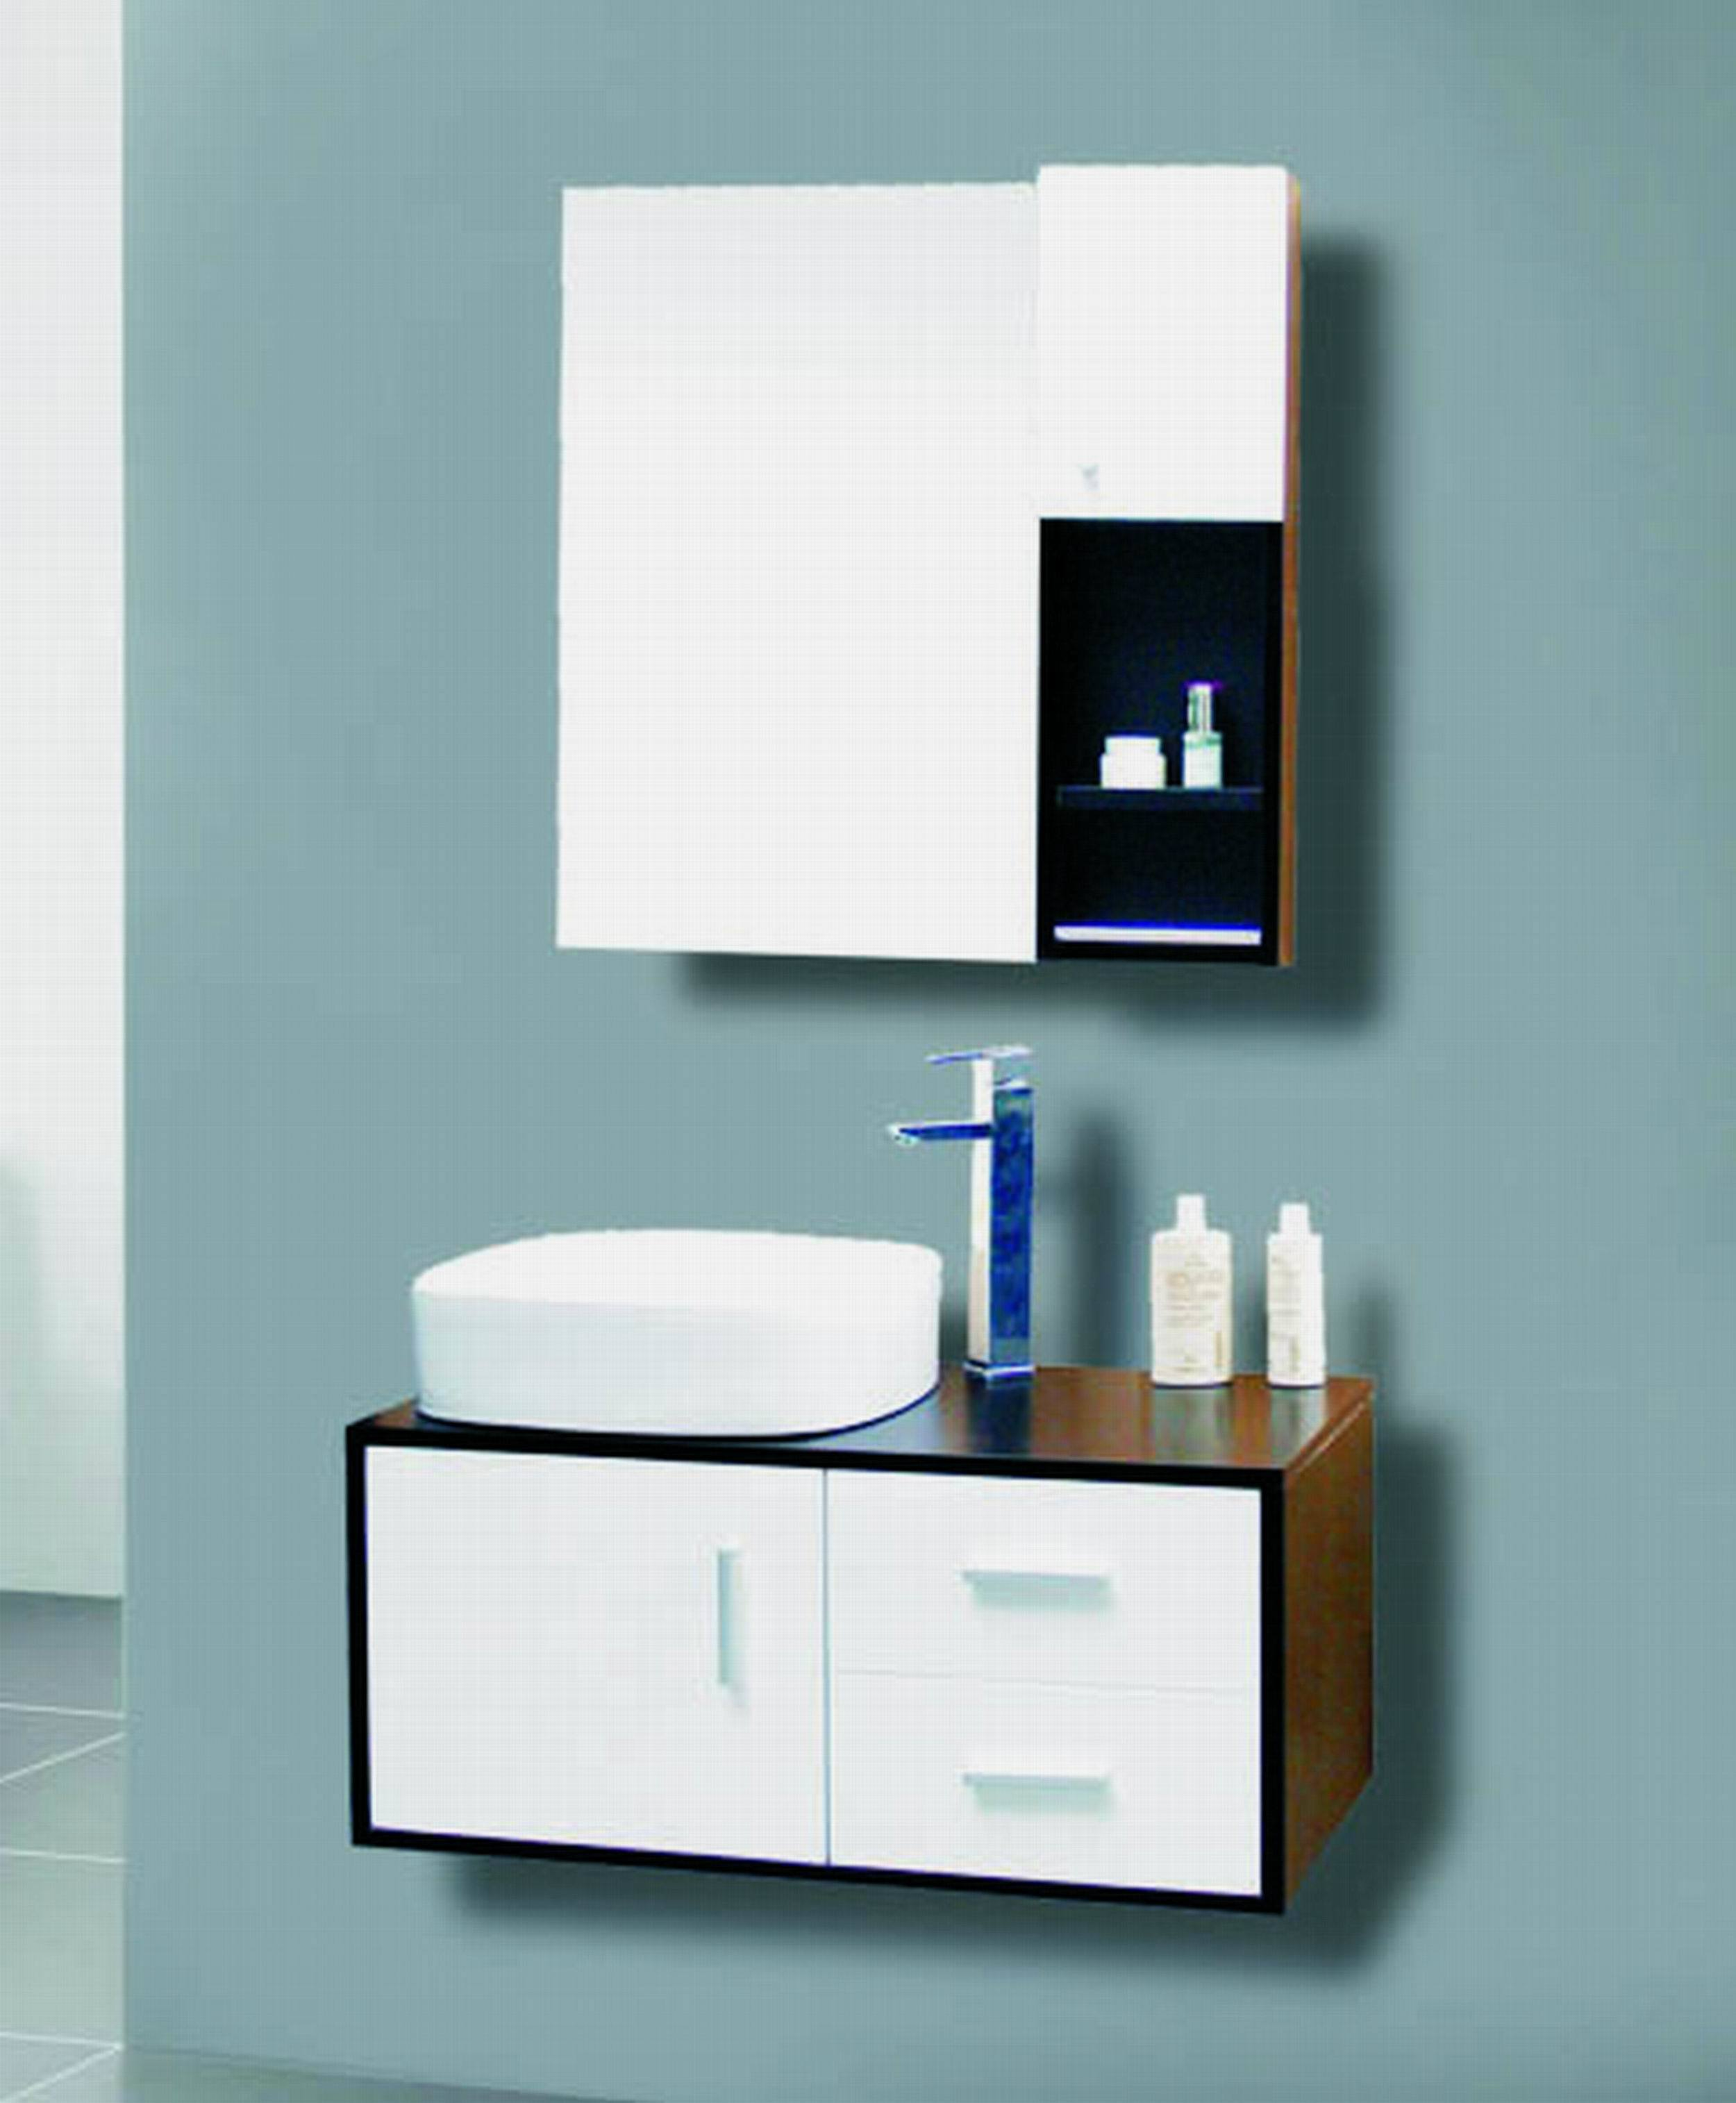 China pvc bathroom cabinet se5419 china bathroom for Bathroom furniture cabinets